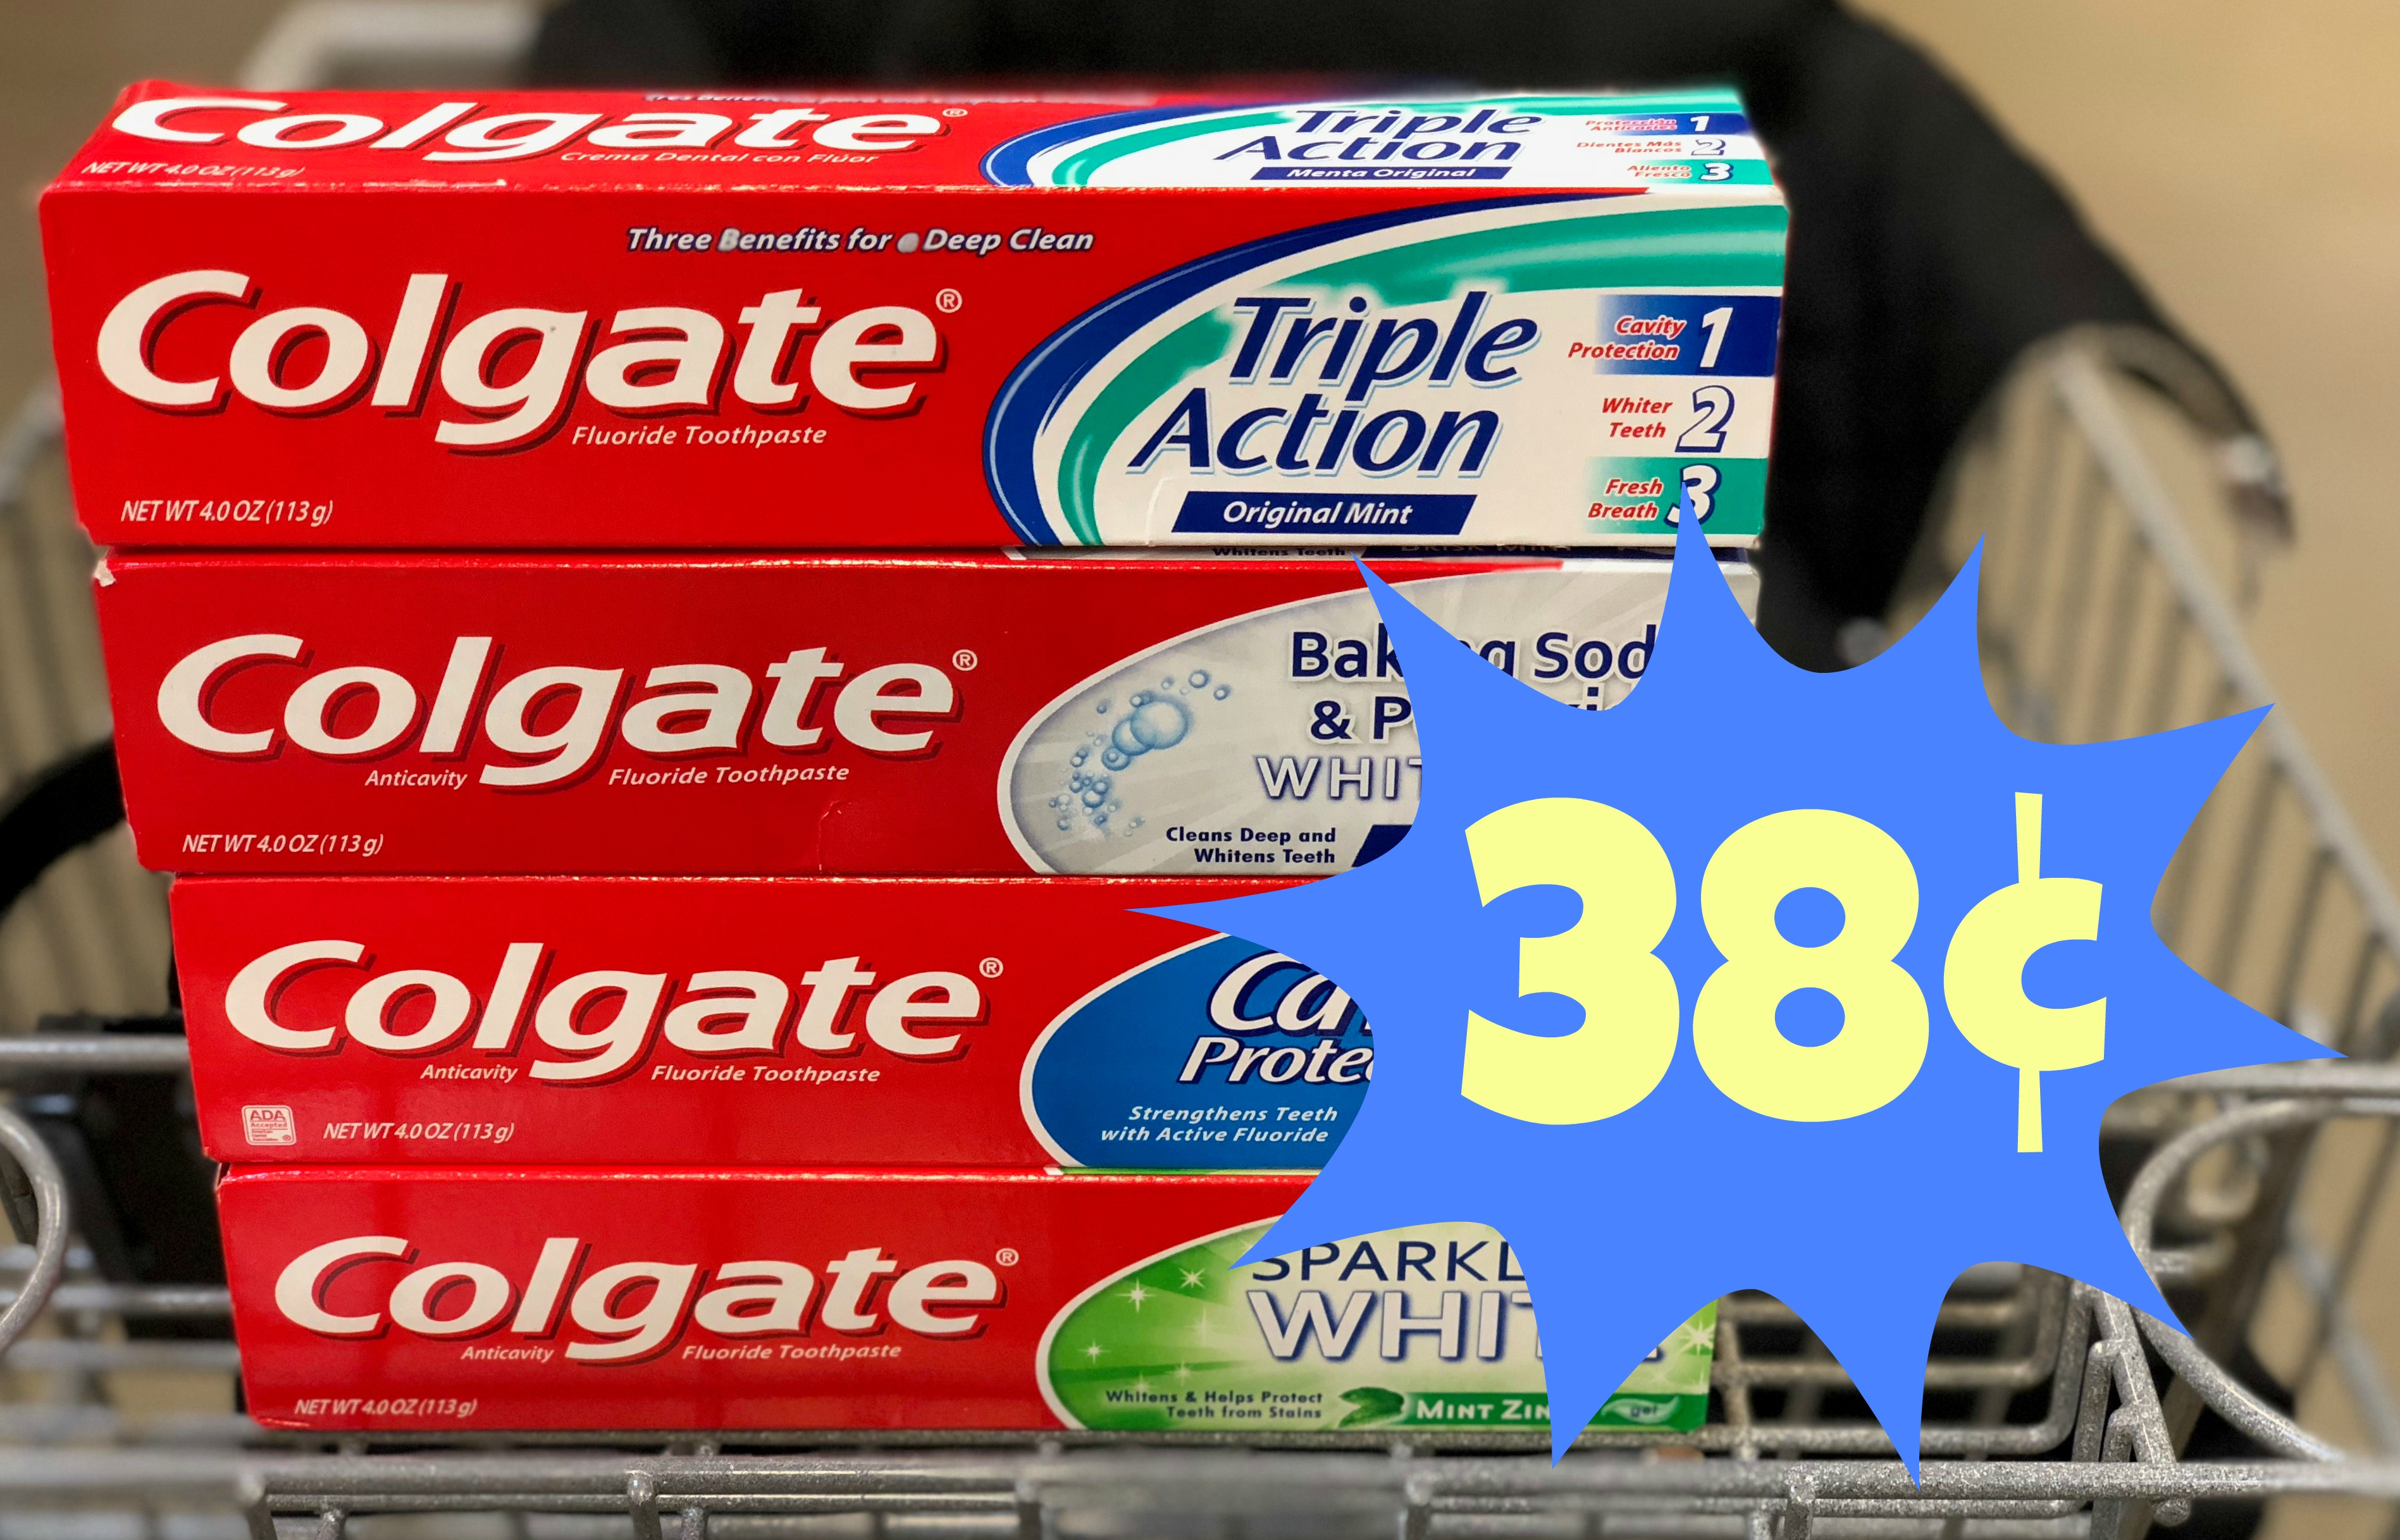 Or, use the $/1 any Colgate Toothpaste oz or larger printable coupon Use the $ Instant Coupon printing from the Magic Coupon Machine this week Final cost as low as FREE! Please note, the $ Instant Coupon printing from the Magic Coupon Machine is mentioned in the ad.